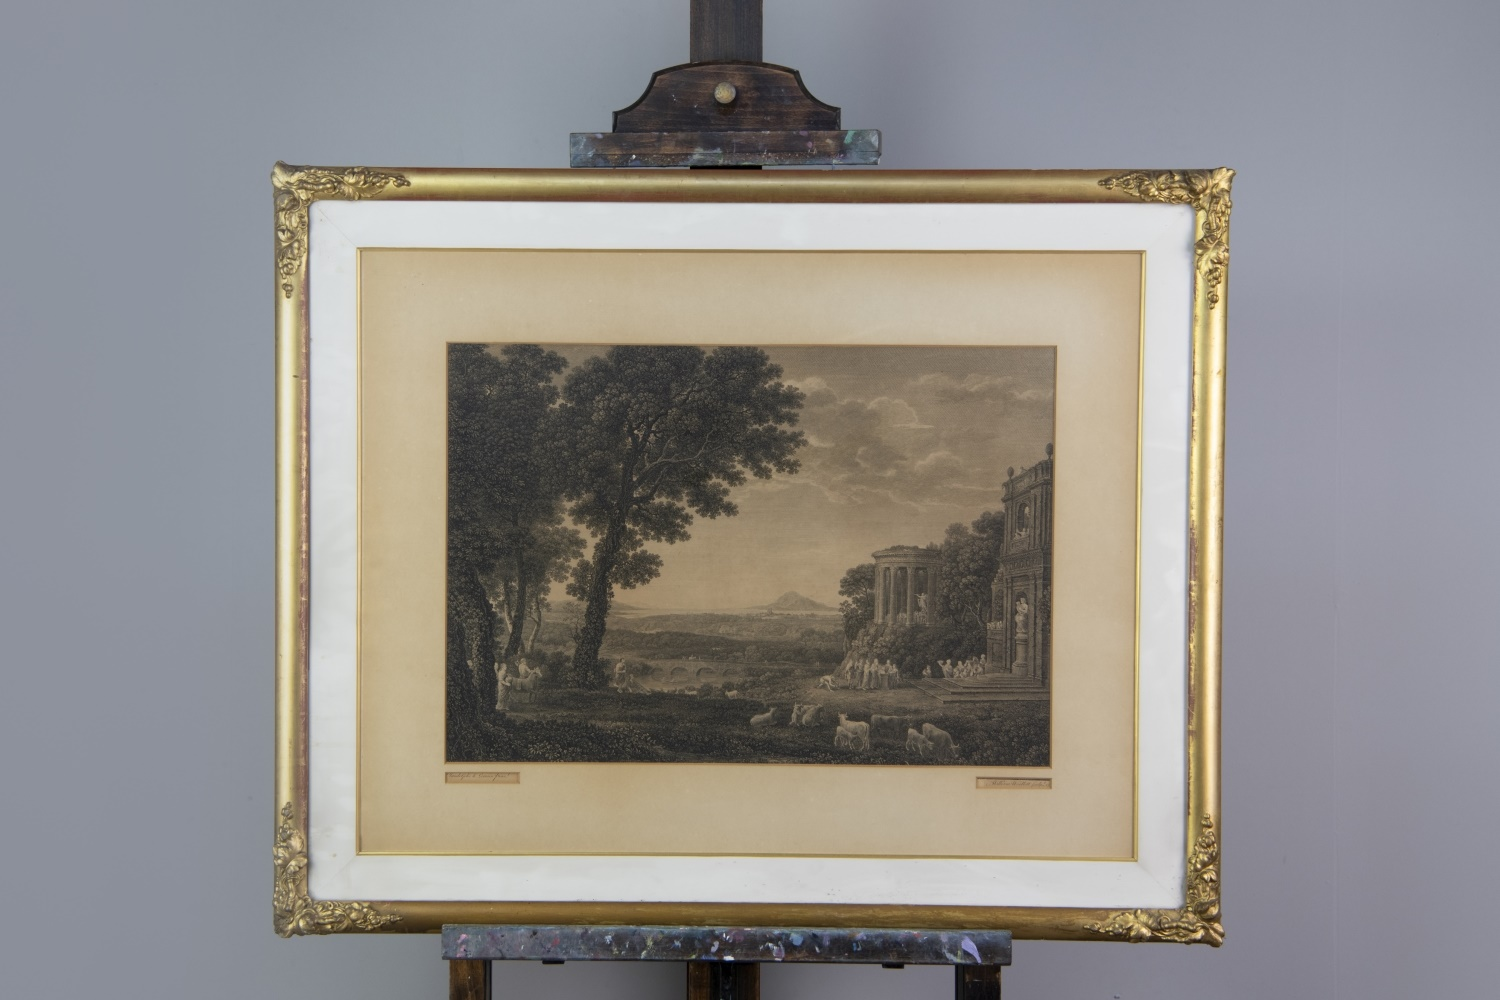 TWO ENGRAVINGS AFTER CLAUDE LORRAIN